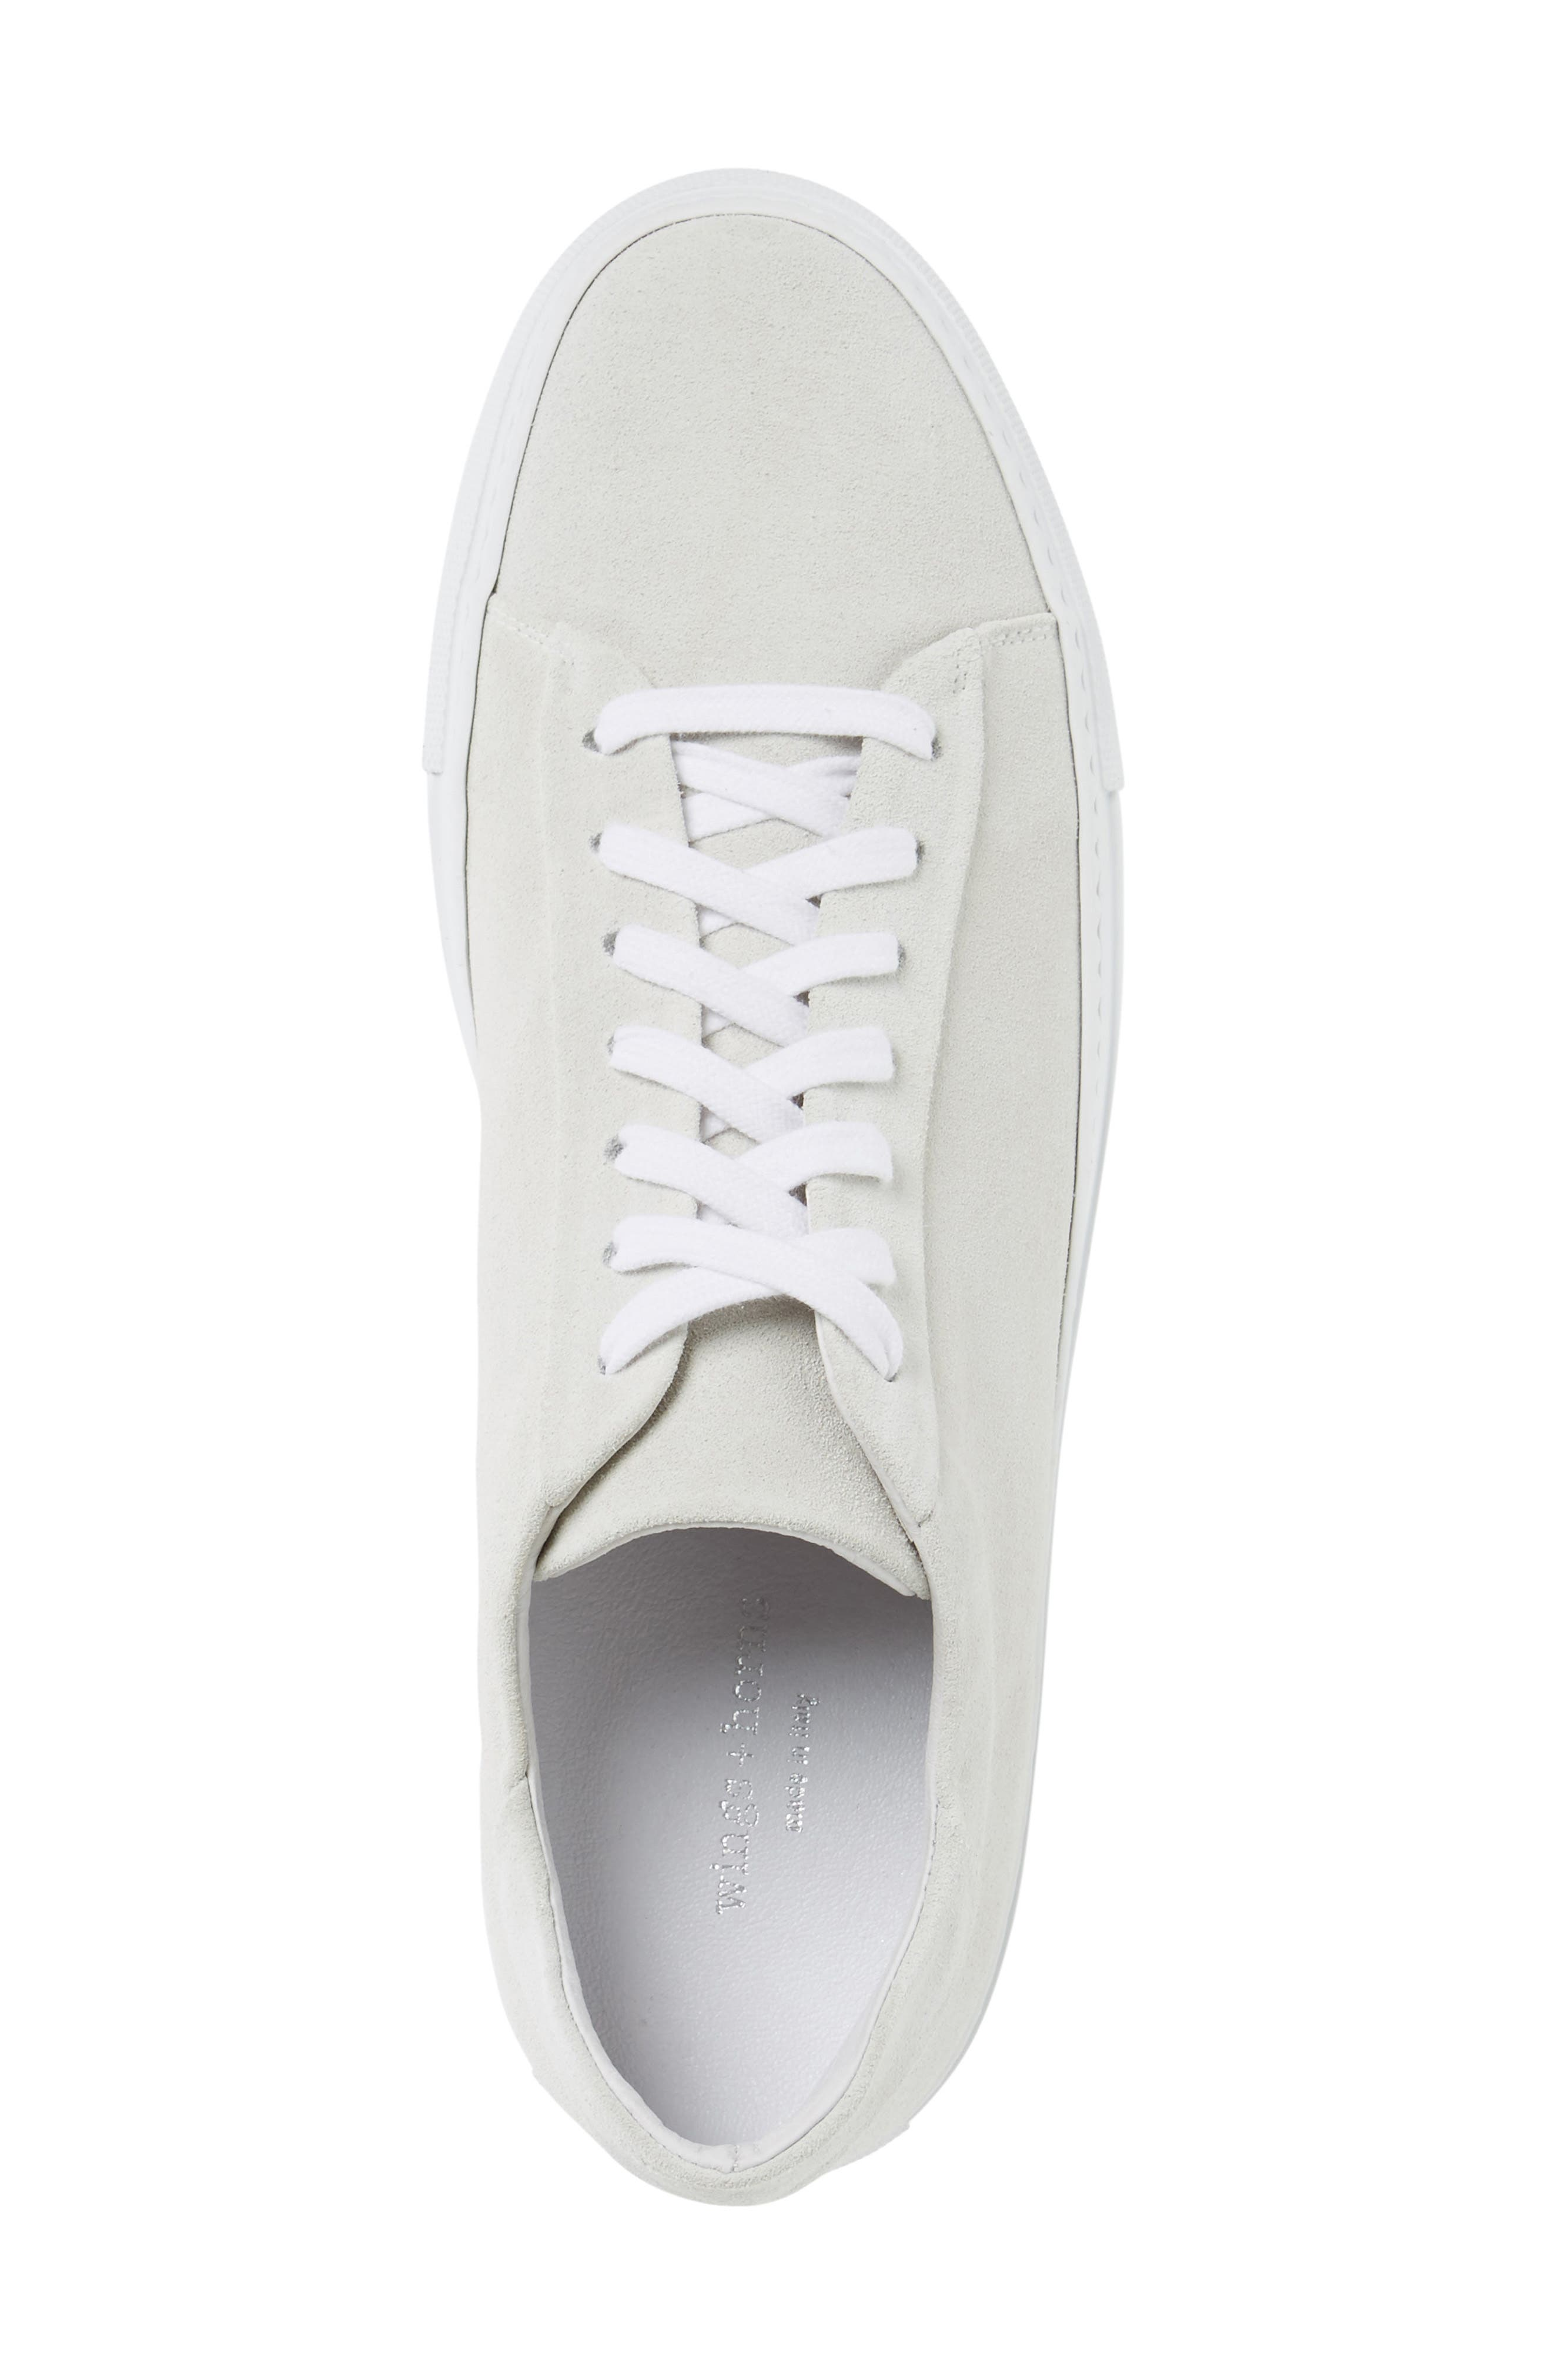 Court Sneaker,                             Alternate thumbnail 3, color,                             White Suede